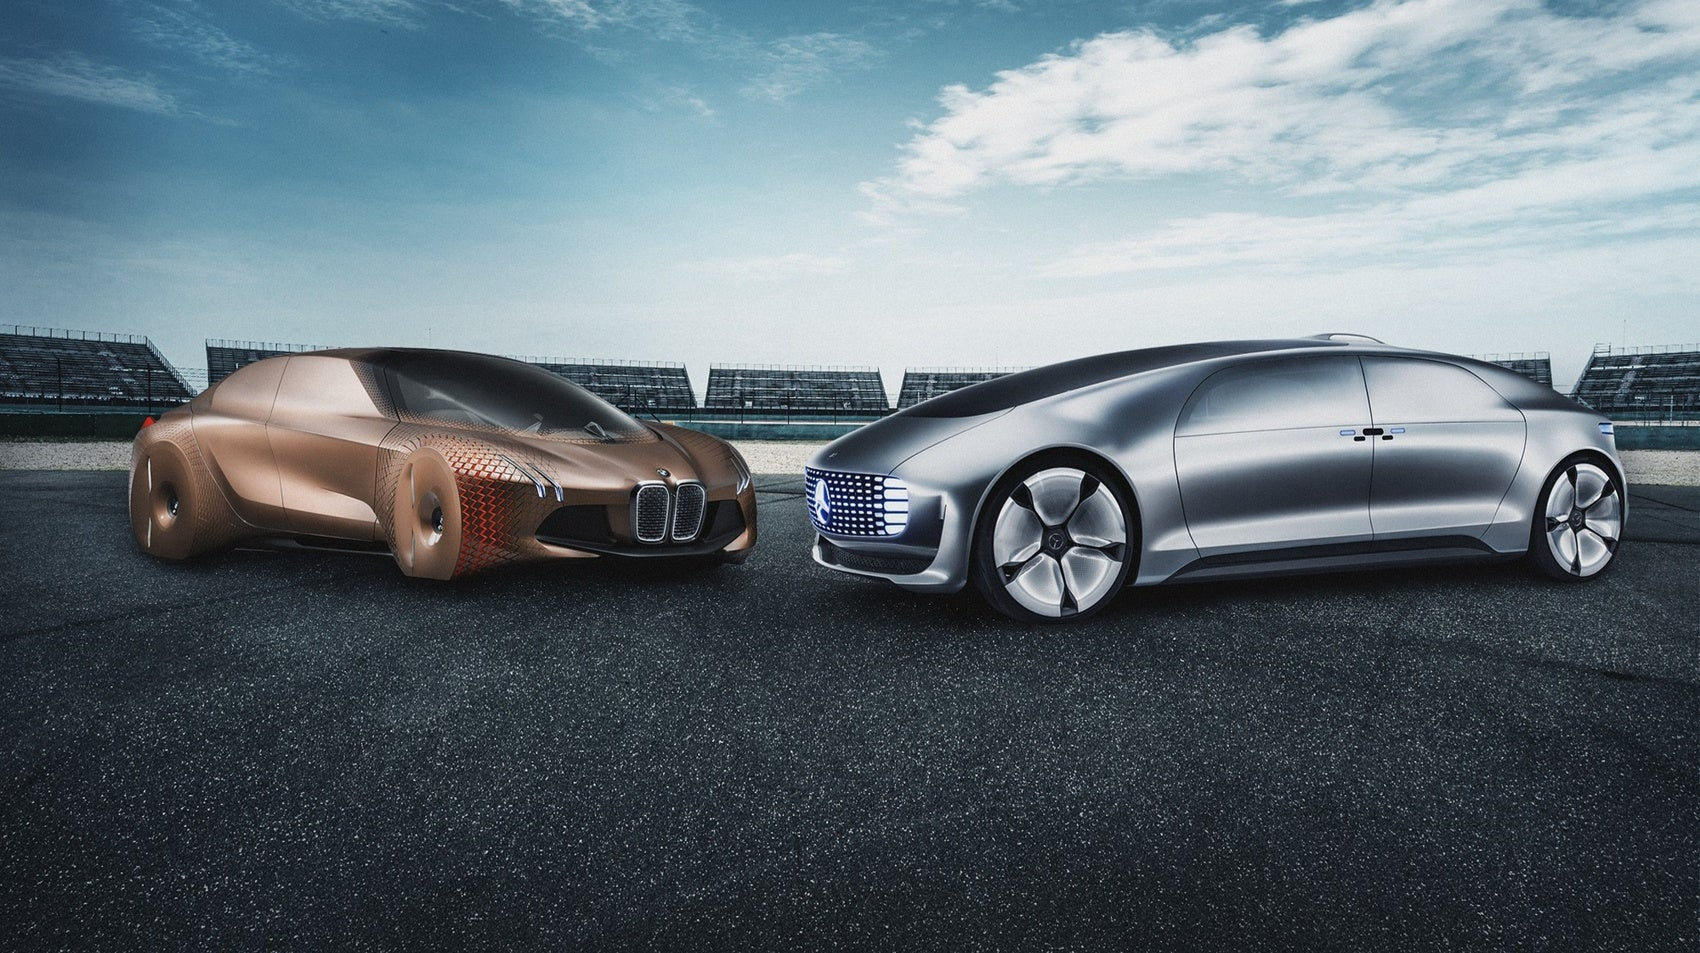 BMW Group & Daimler AG Partner For Autonomous Driving Technology